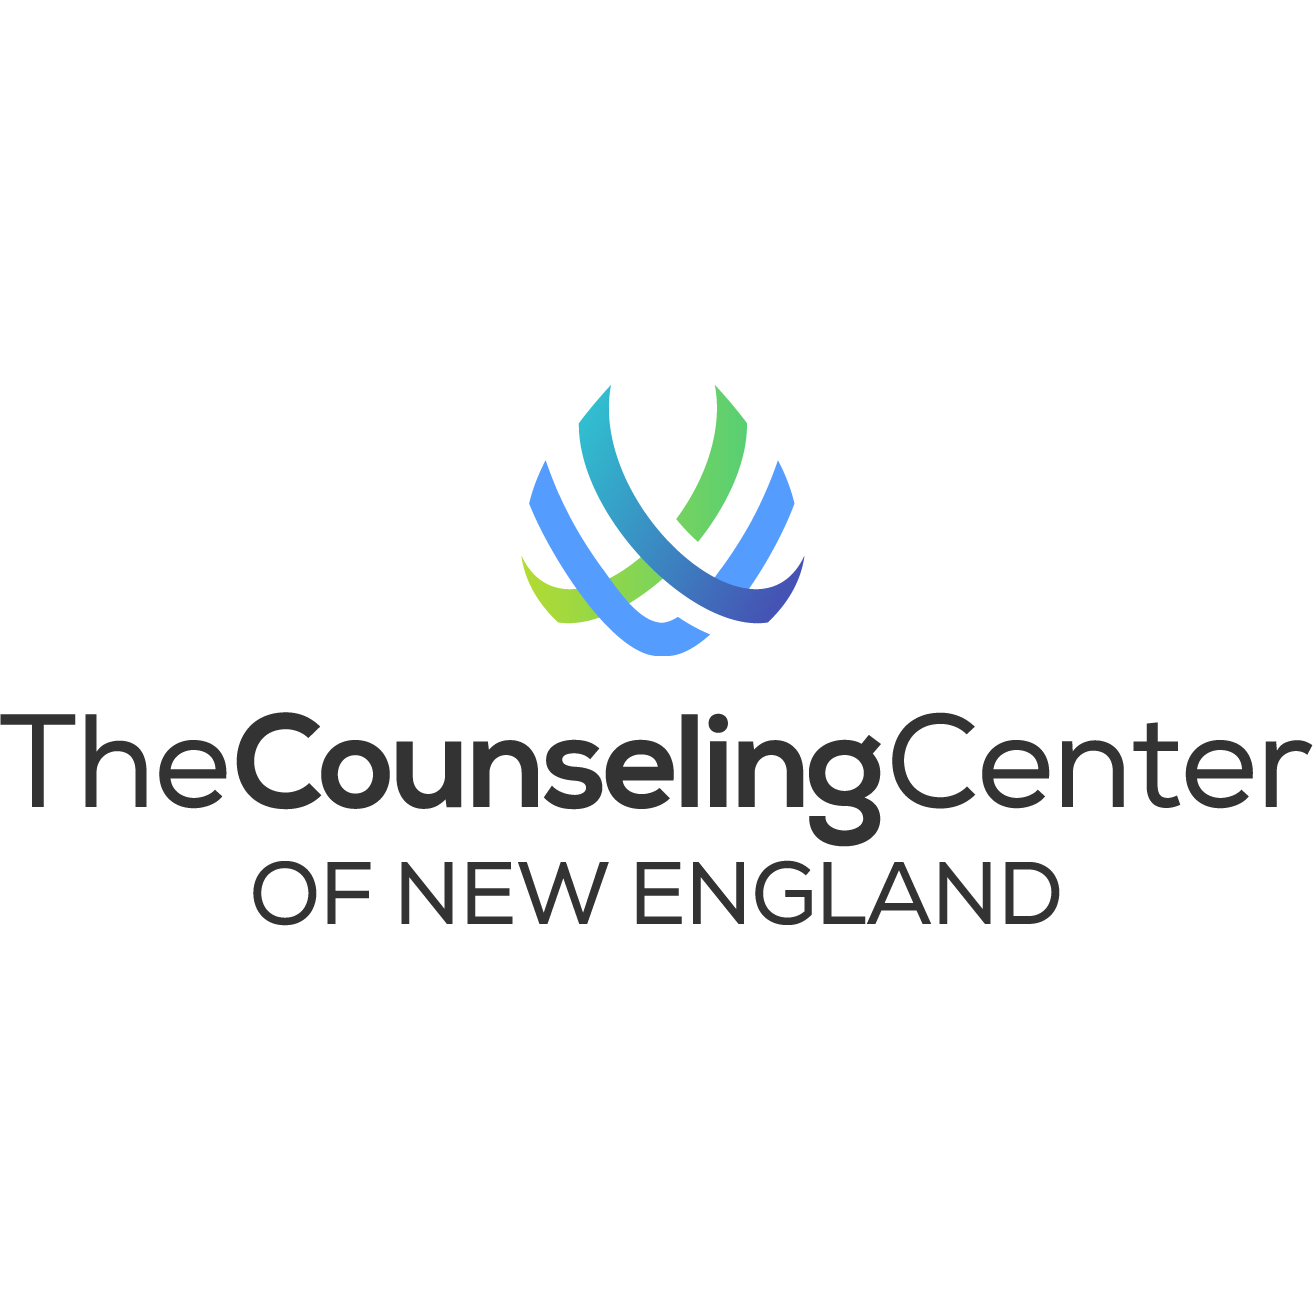 The Counseling Center of New England (Londonderry)